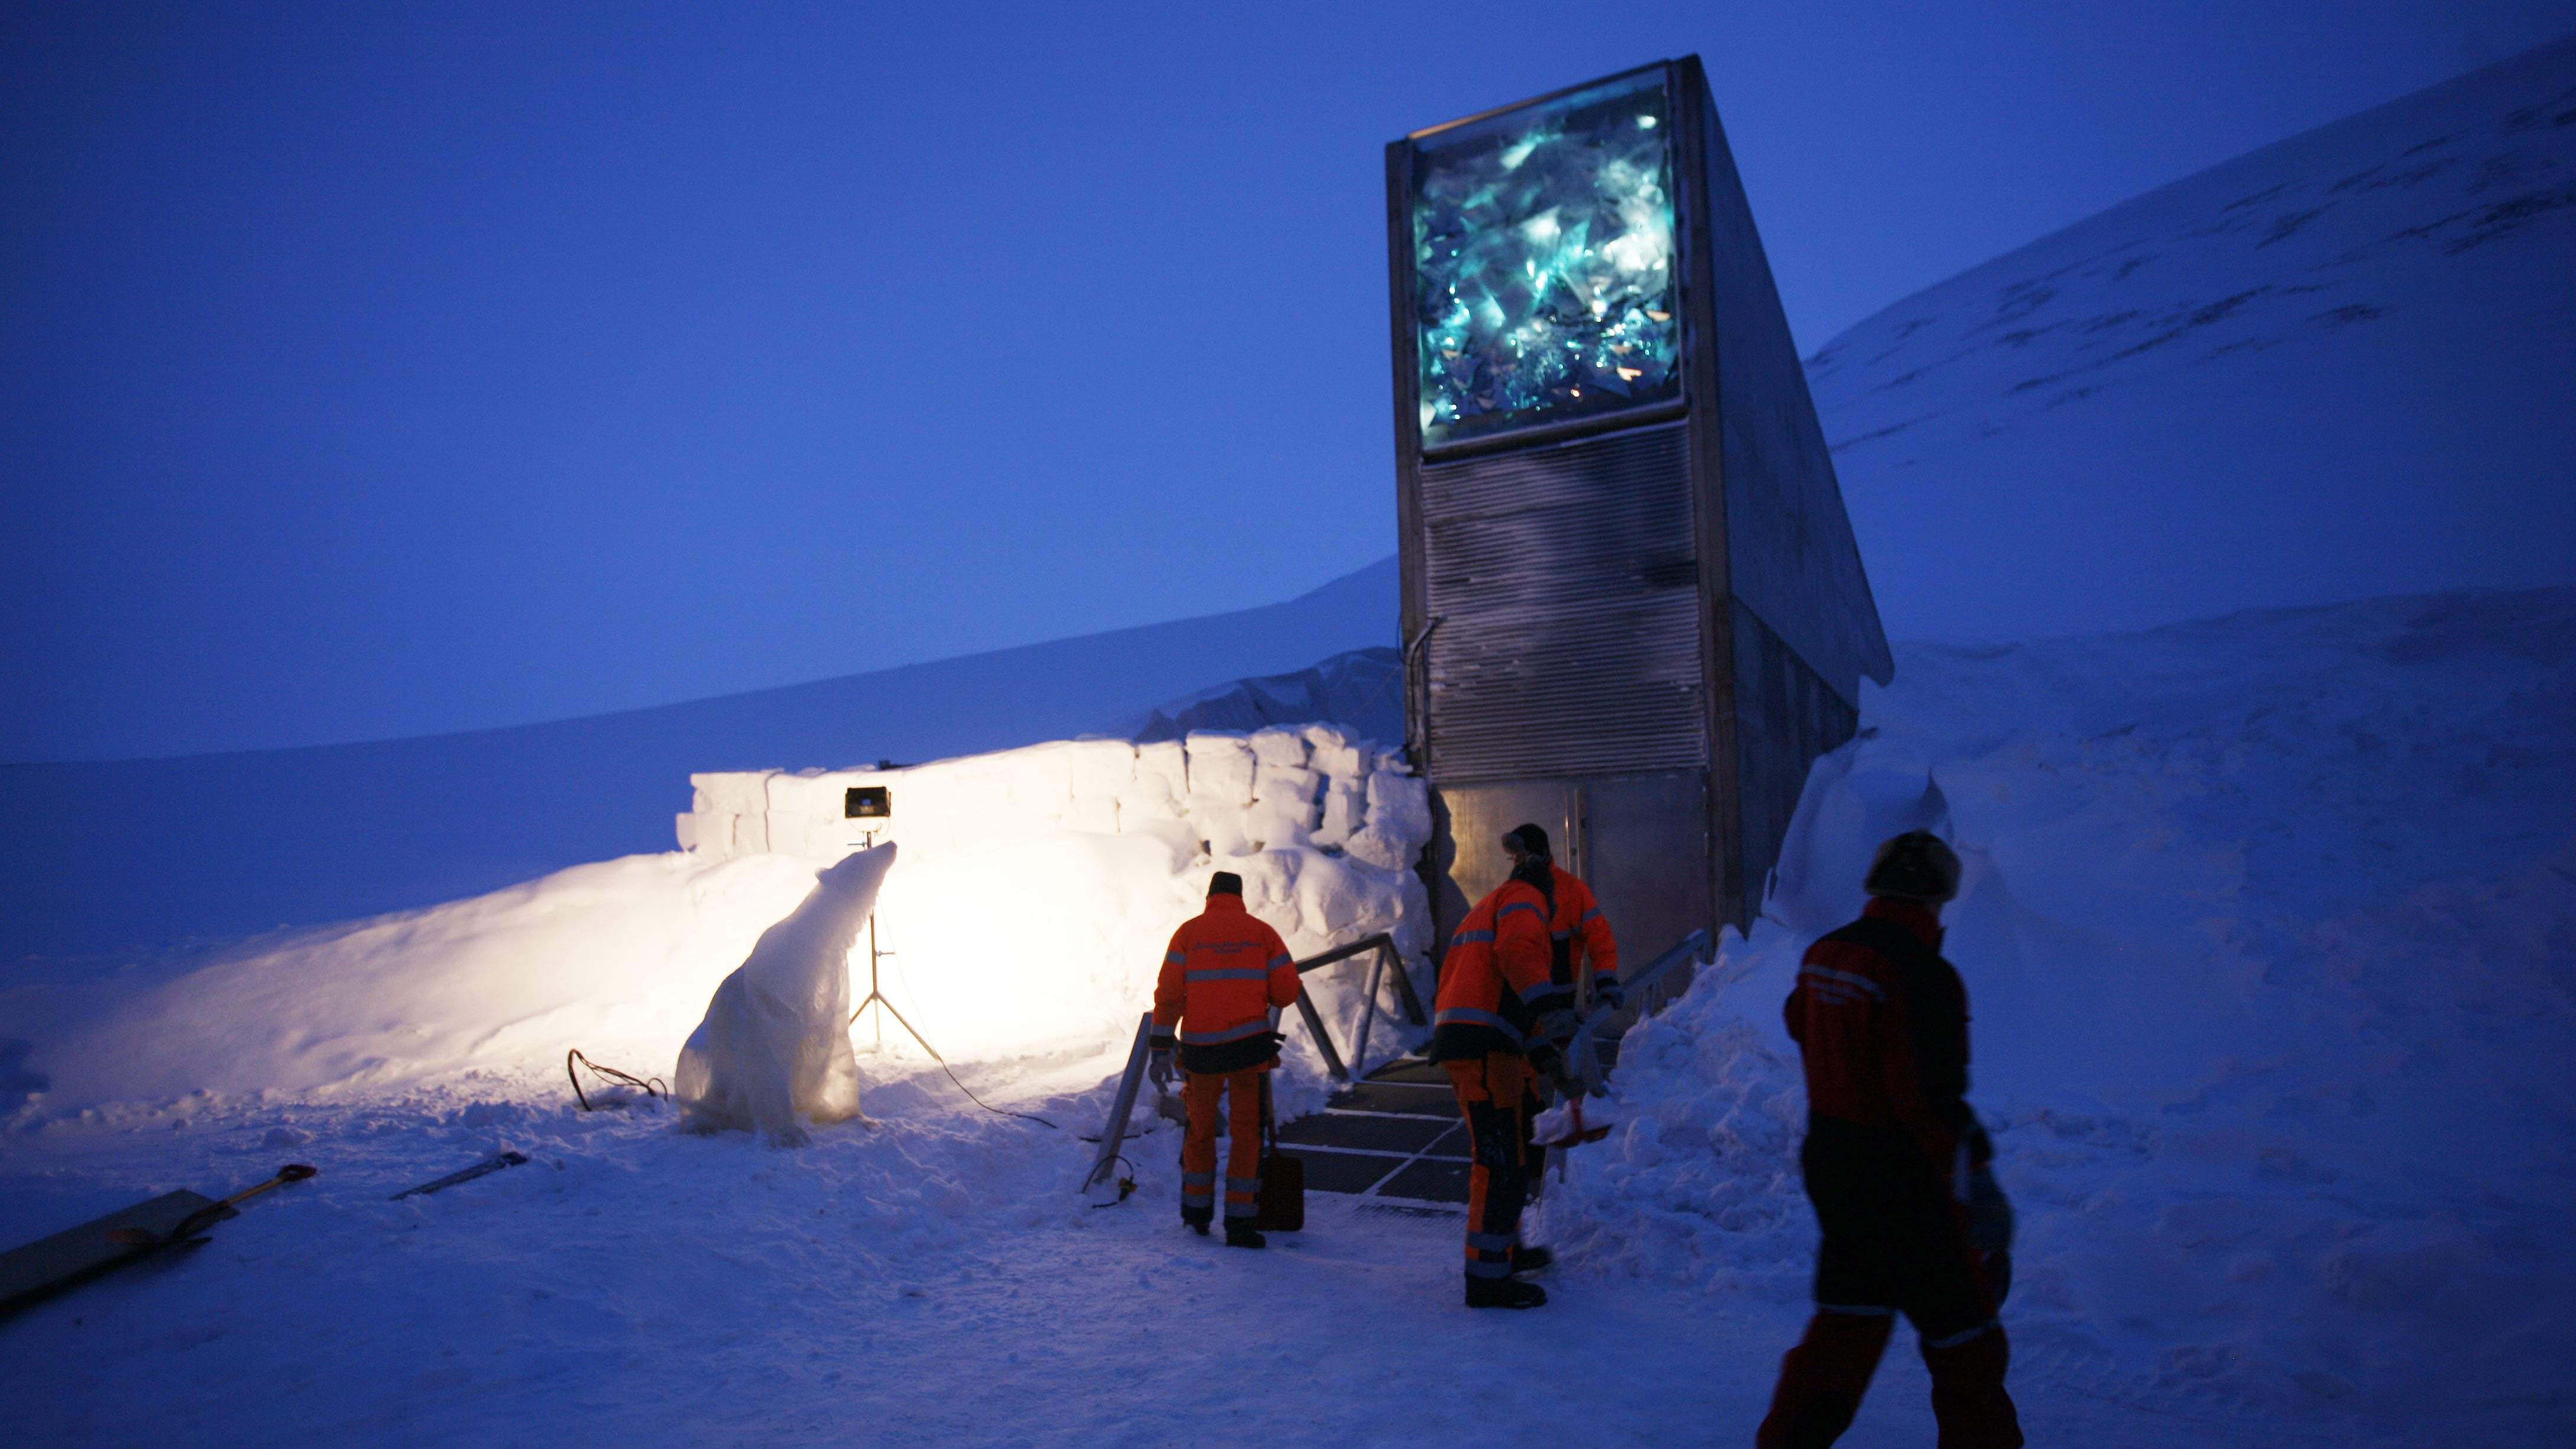 The Quot Fail Safe Quot Svalbard Seed Vault Meant To Save Us From